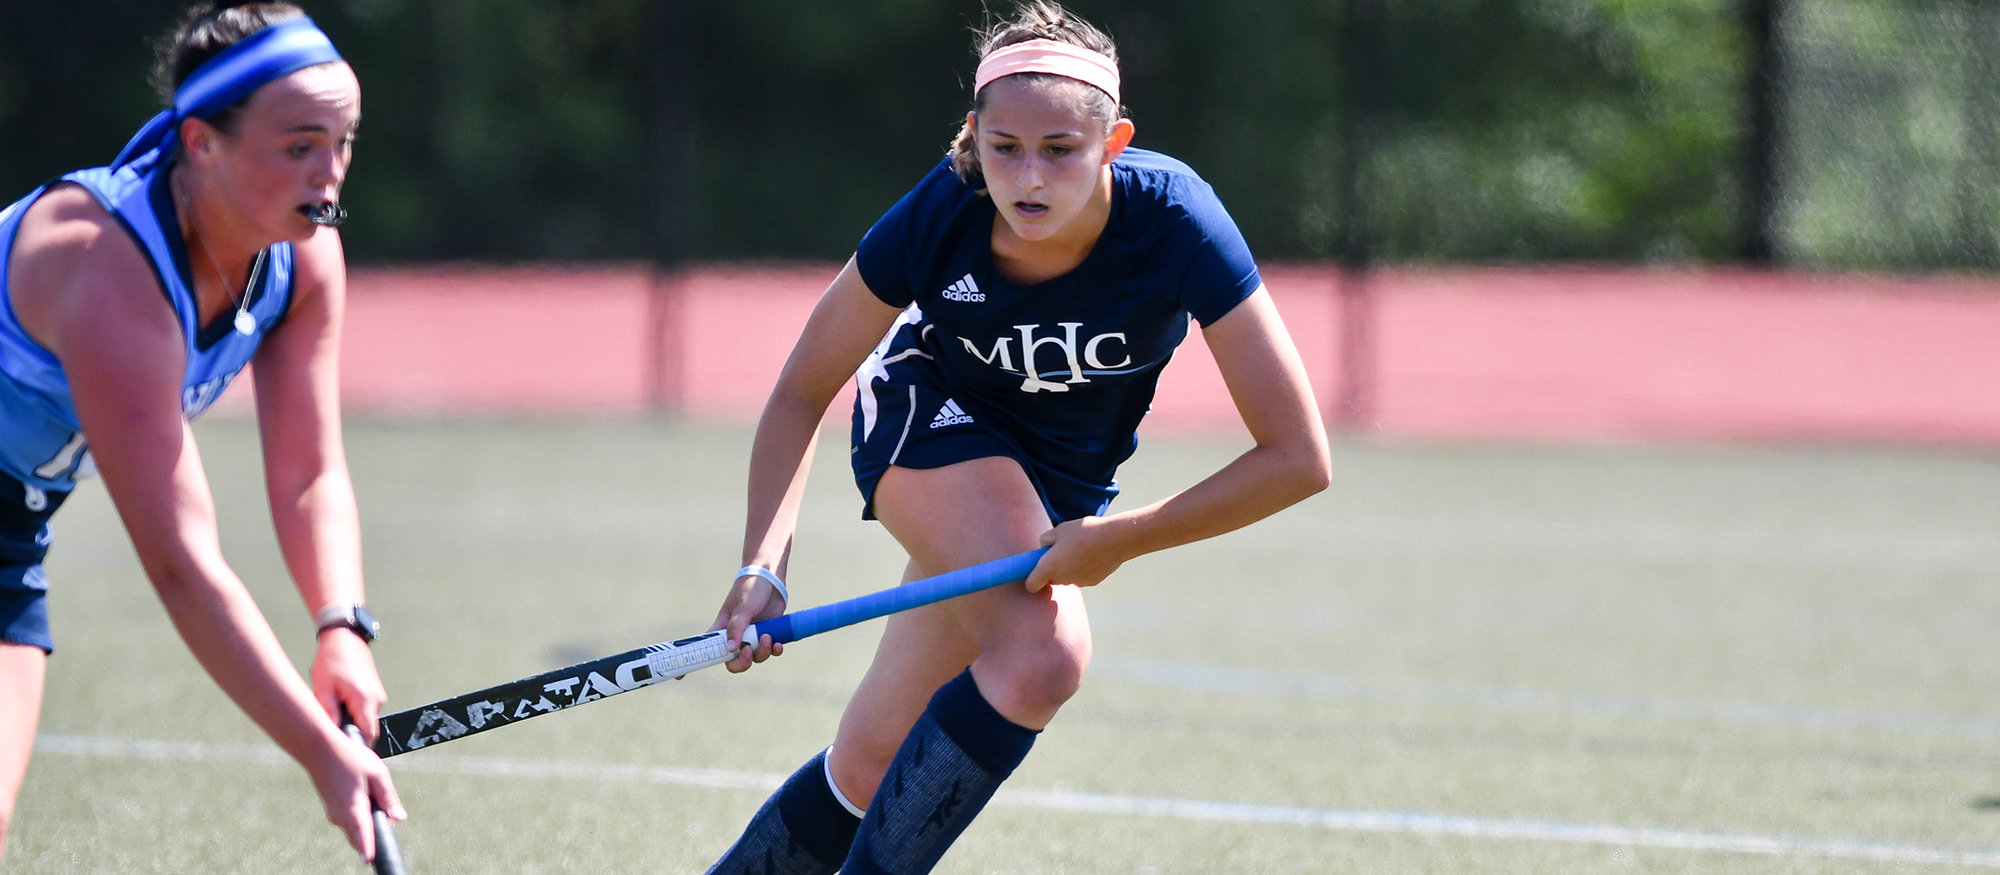 Field Hockey Rallies Past Wheaton, 3-1, on Senior Day